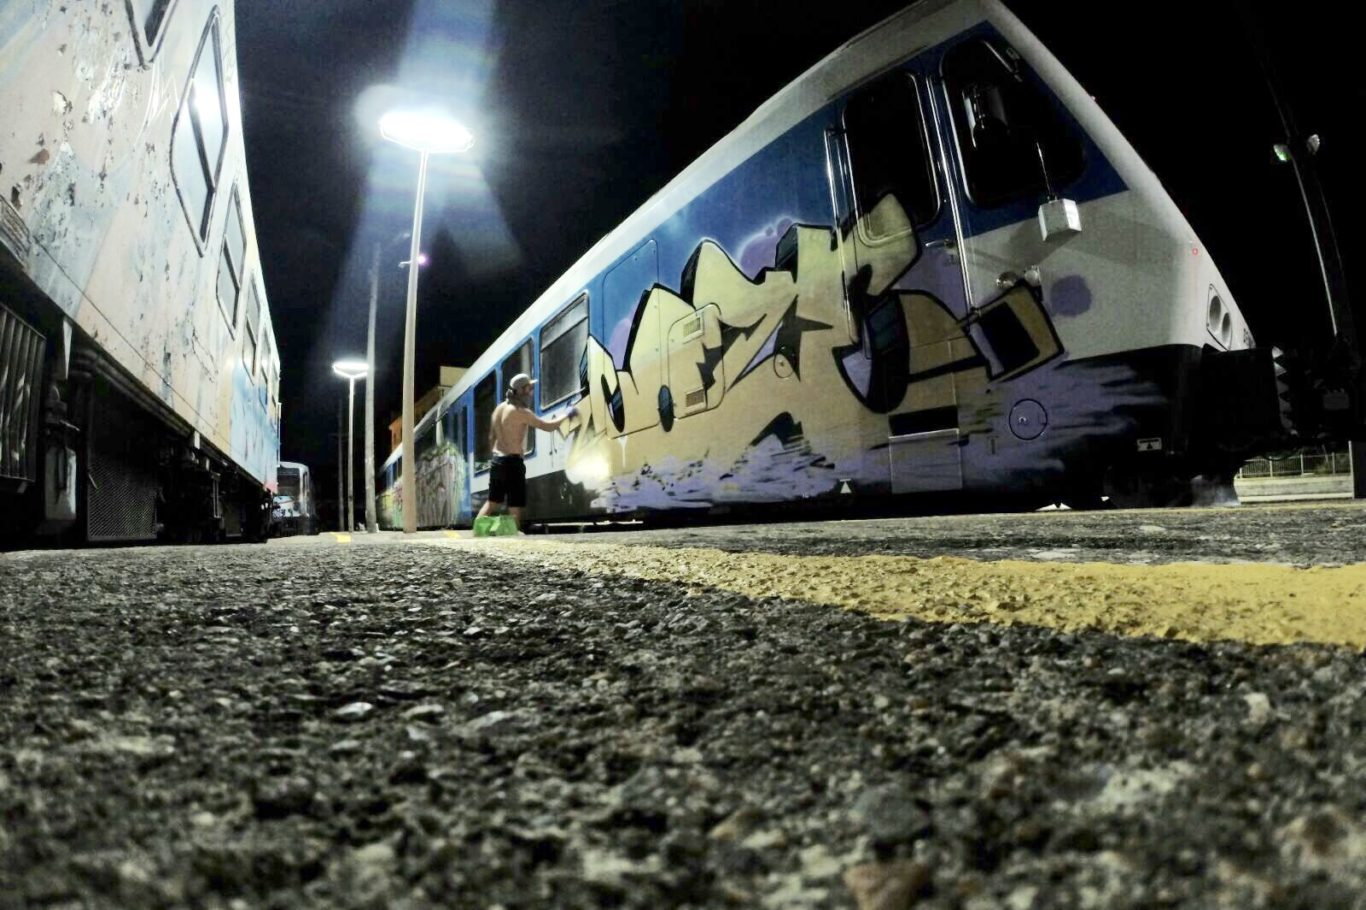 Coze - Graffiti train bombing europe